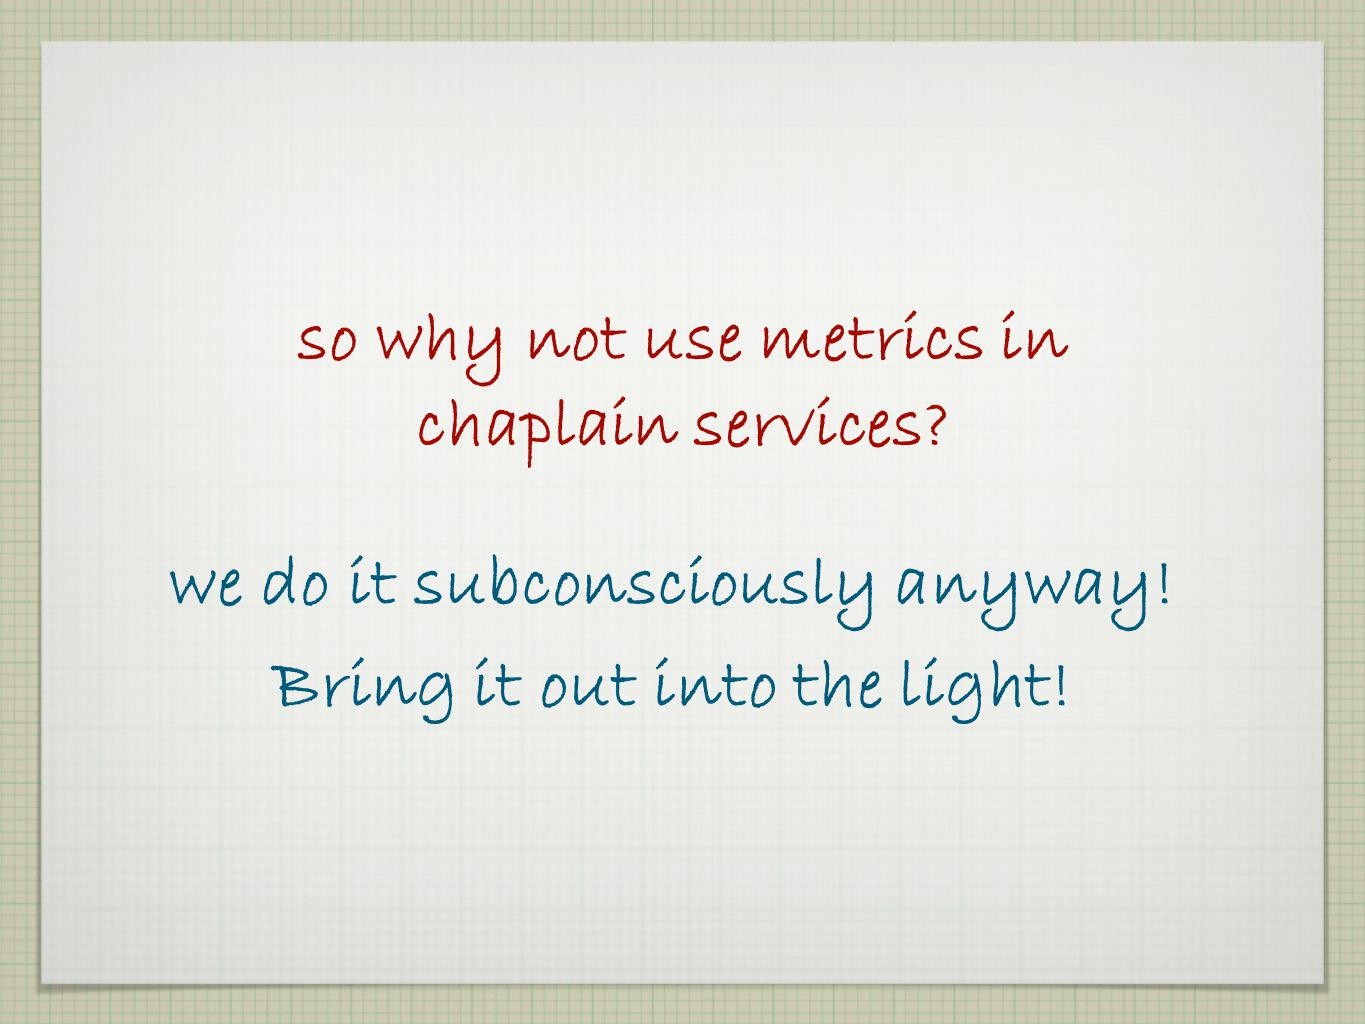 We use metrics all the time